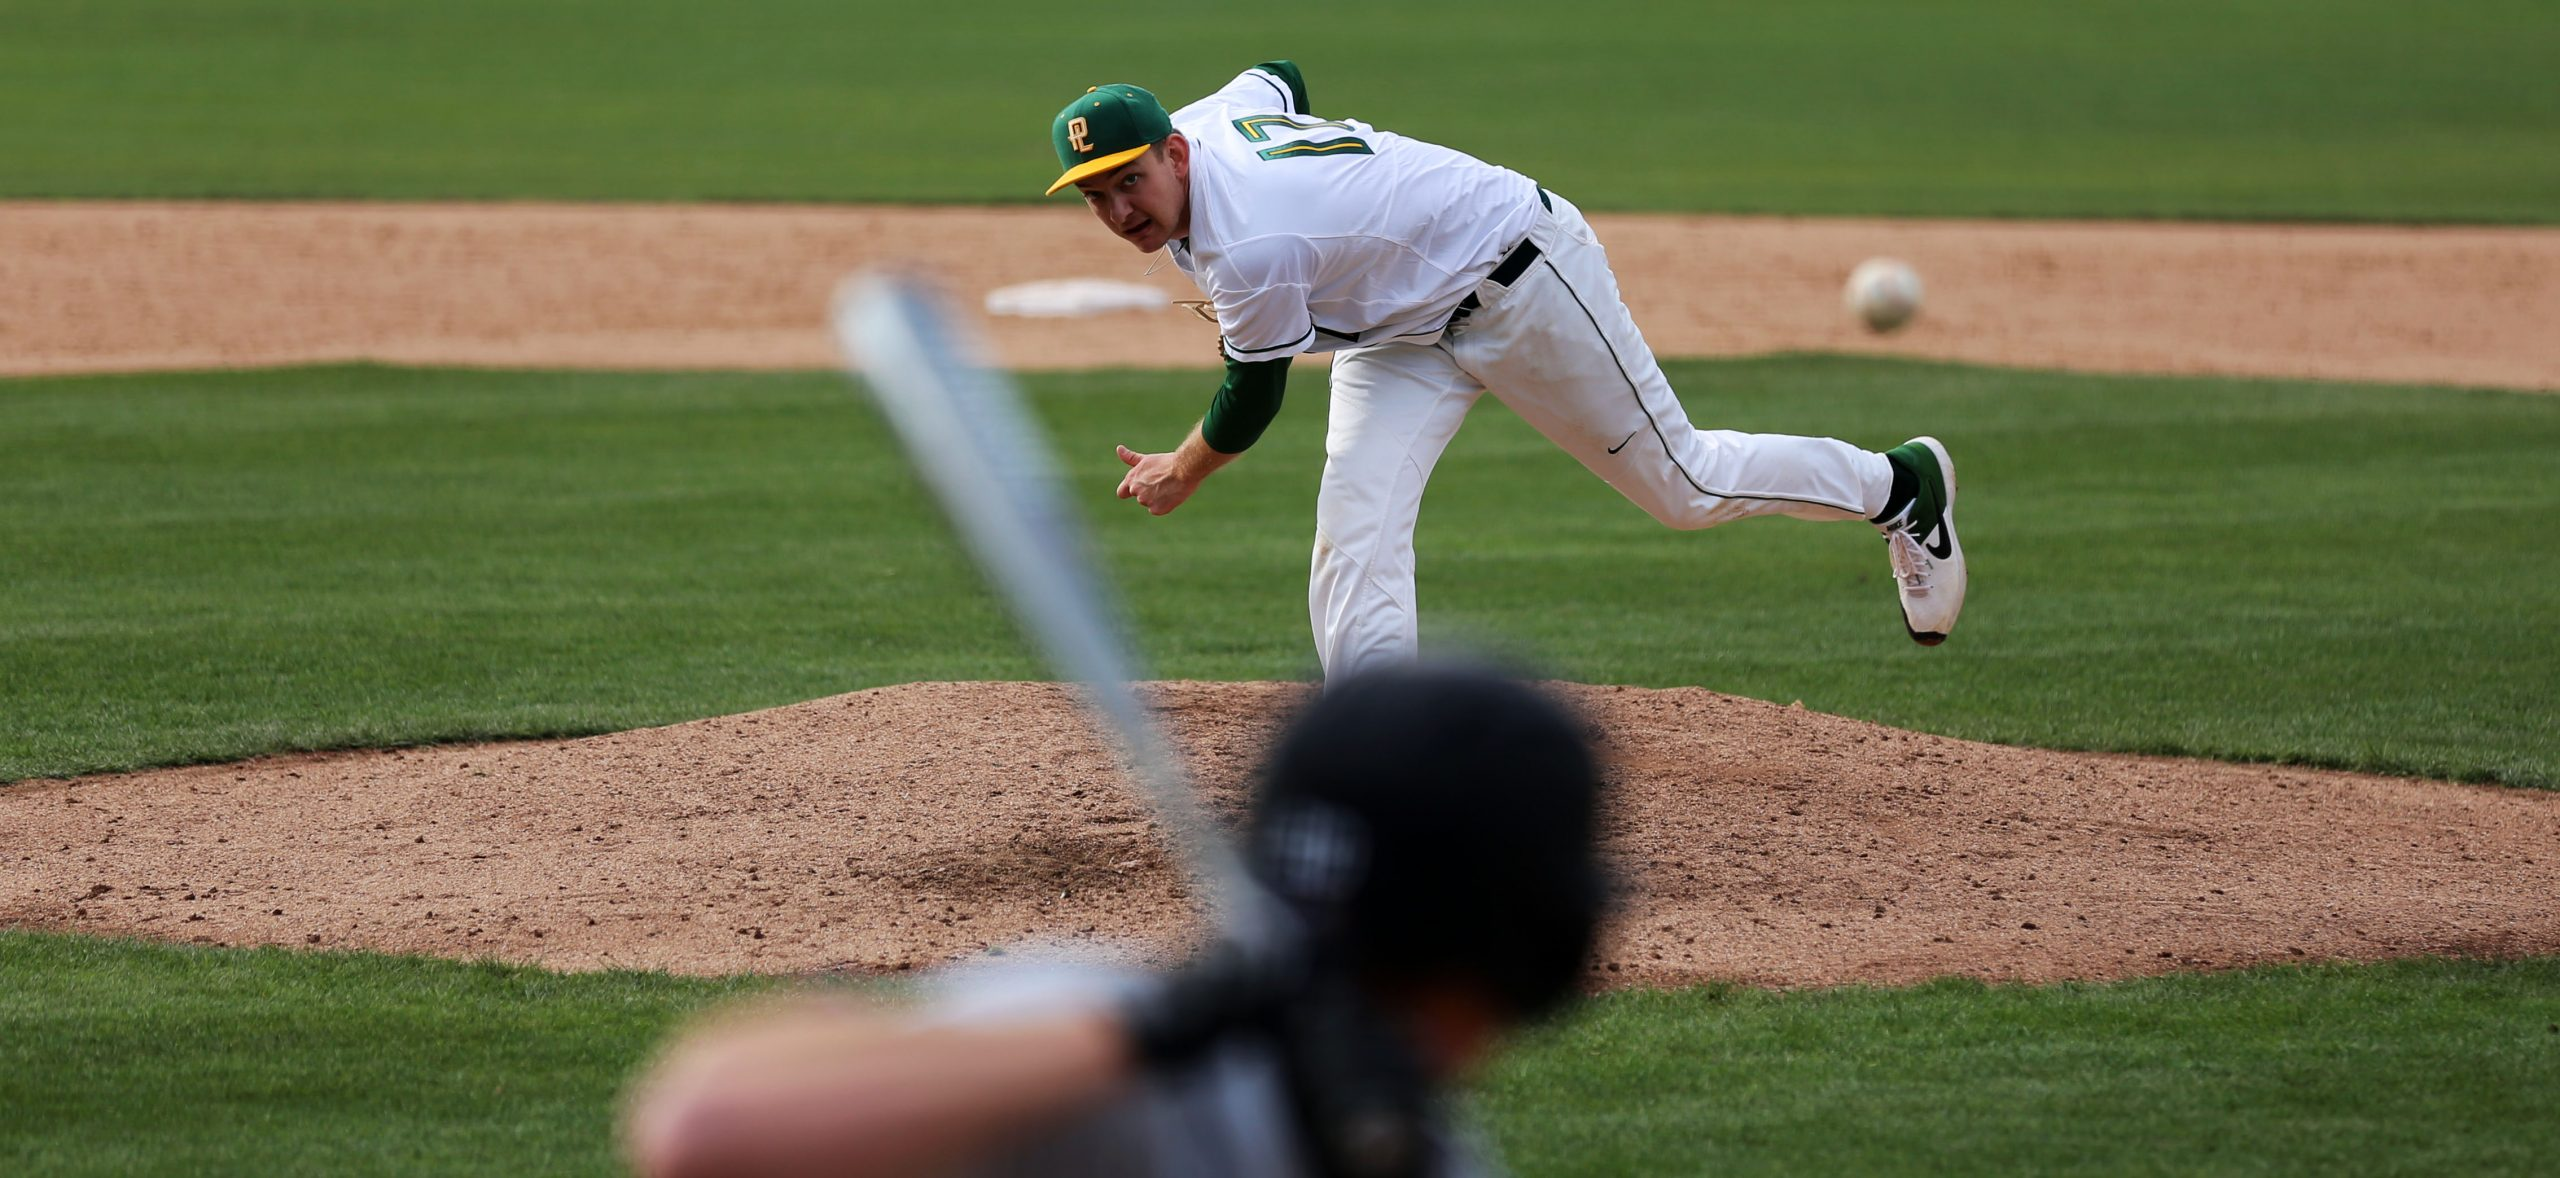 A photo of Noll throwing a pitch during a game.